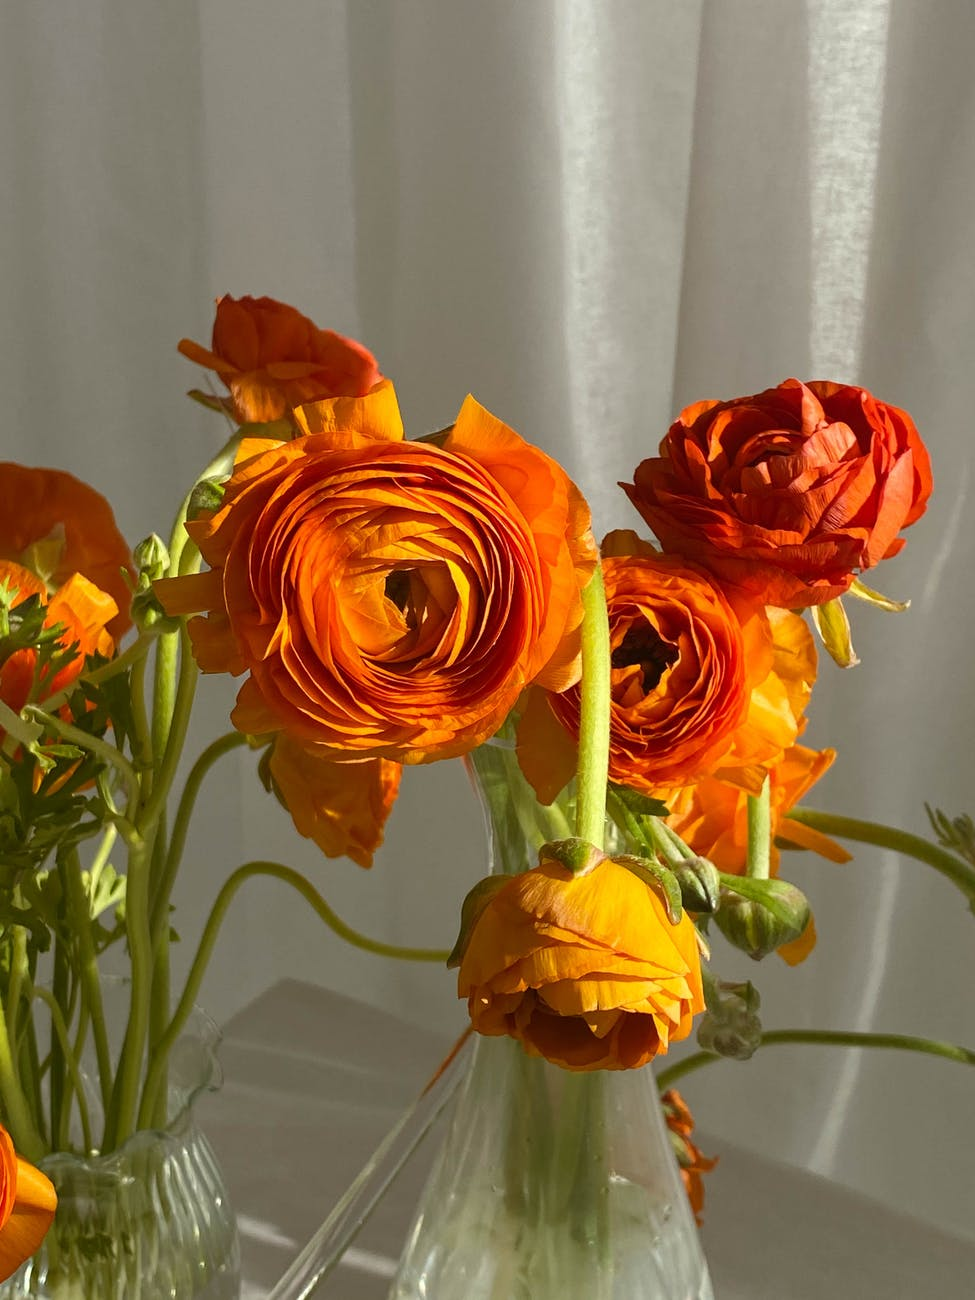 vases of delicate ranunculus asiaticus flowers arranged on table